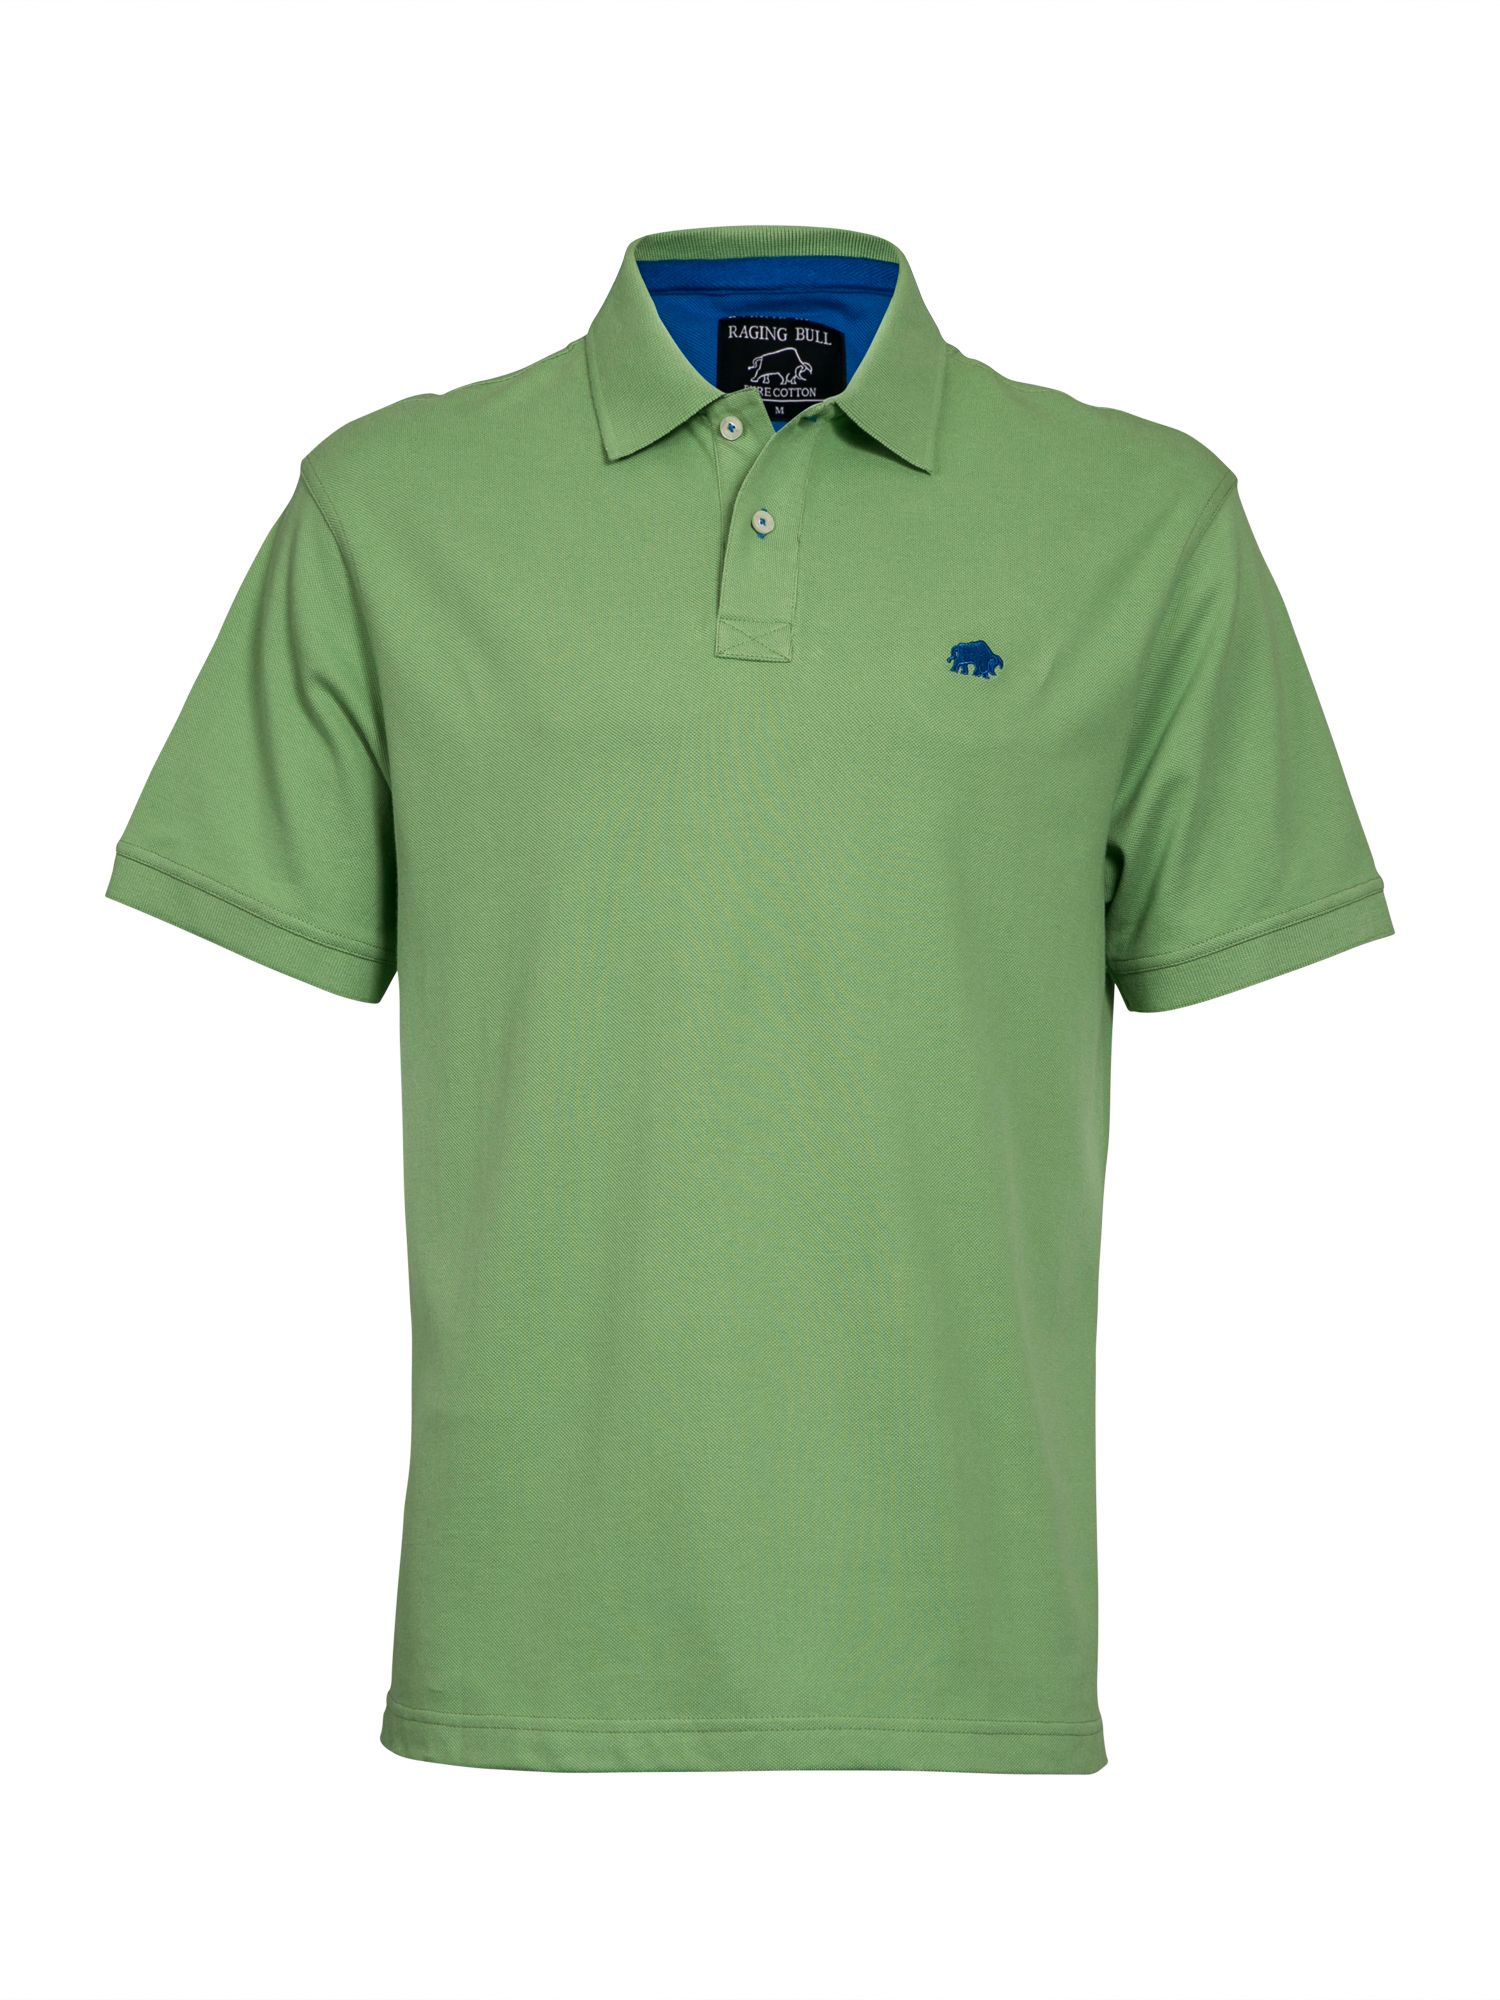 Men's Raging Bull New Signature Polo Shirt, Green